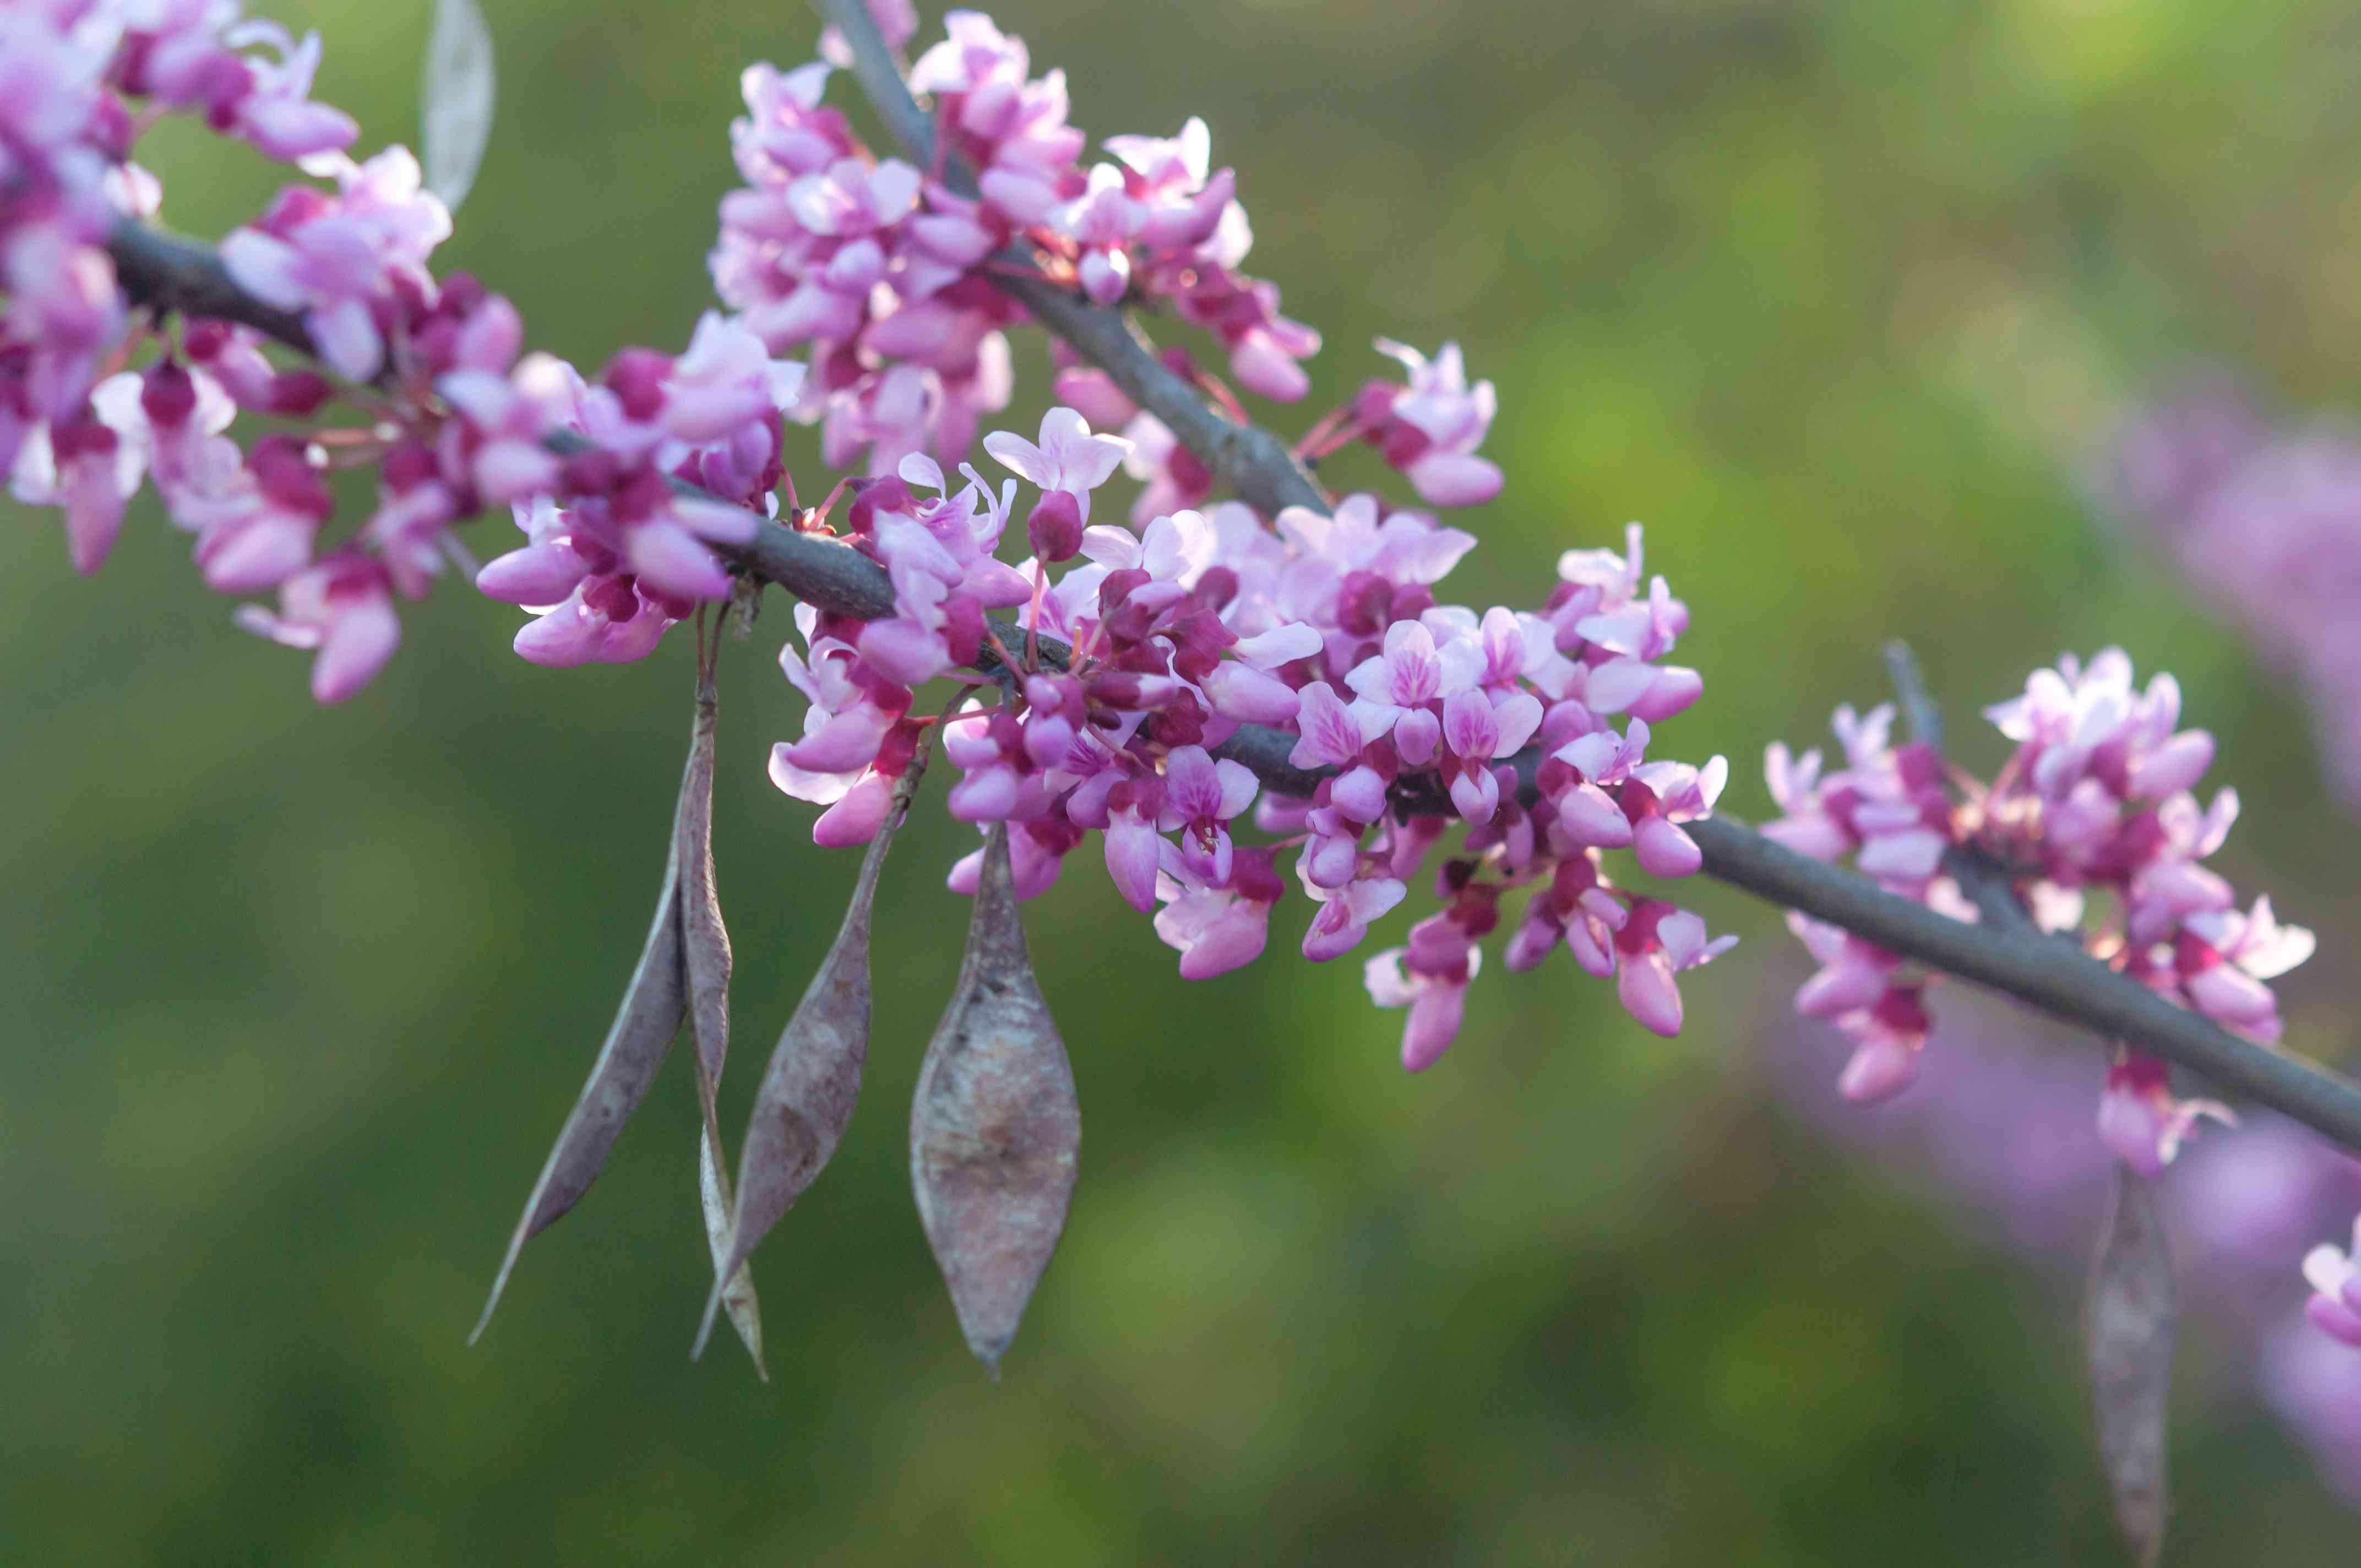 Eastern redbud tree branch with small white and pink flowers and pods hanging